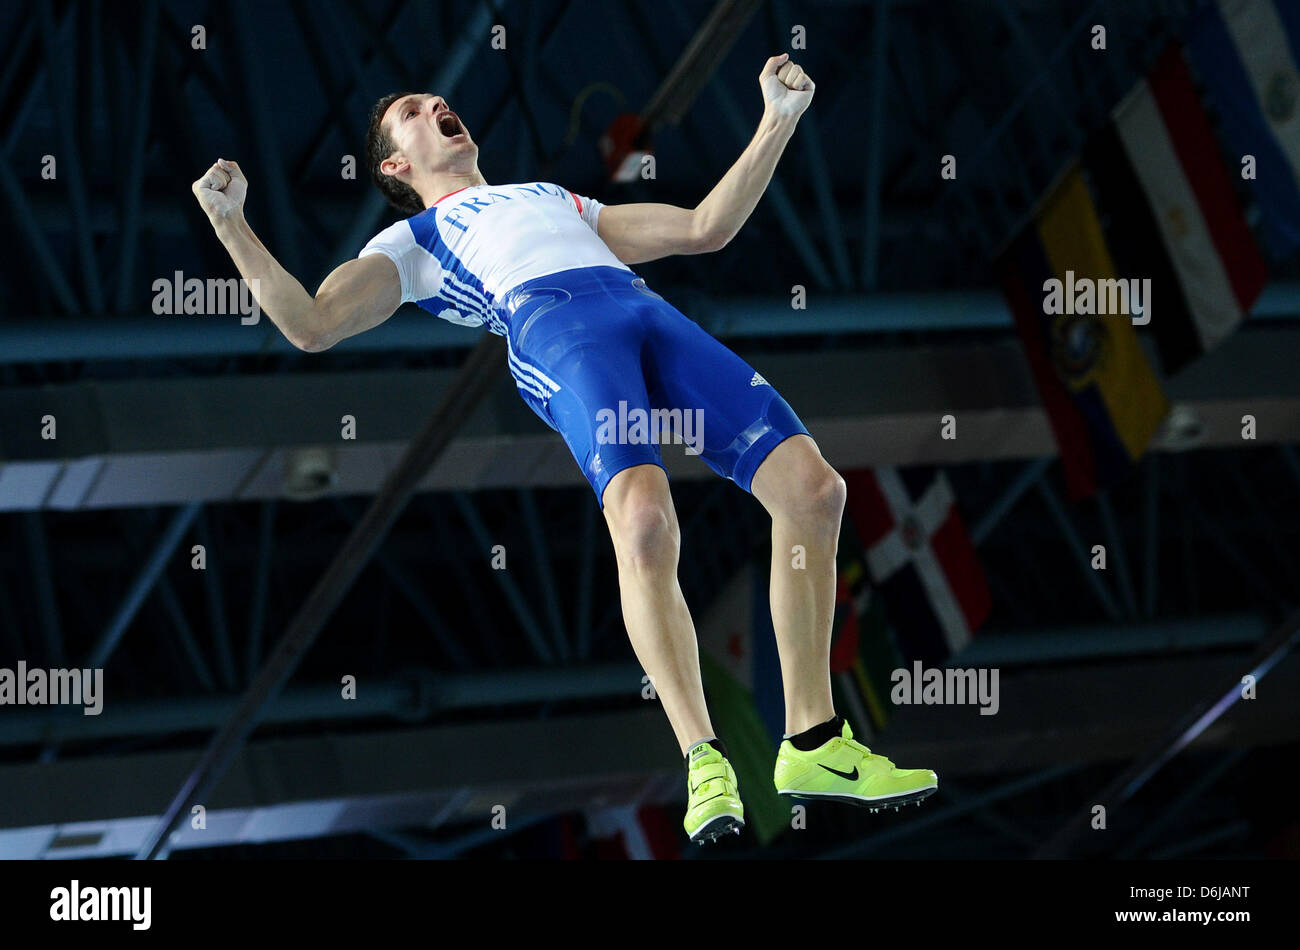 Renaud Lavillenie of France celebrates in the air during the Men's pole vault final at the IAAF World Indoor - Stock Image